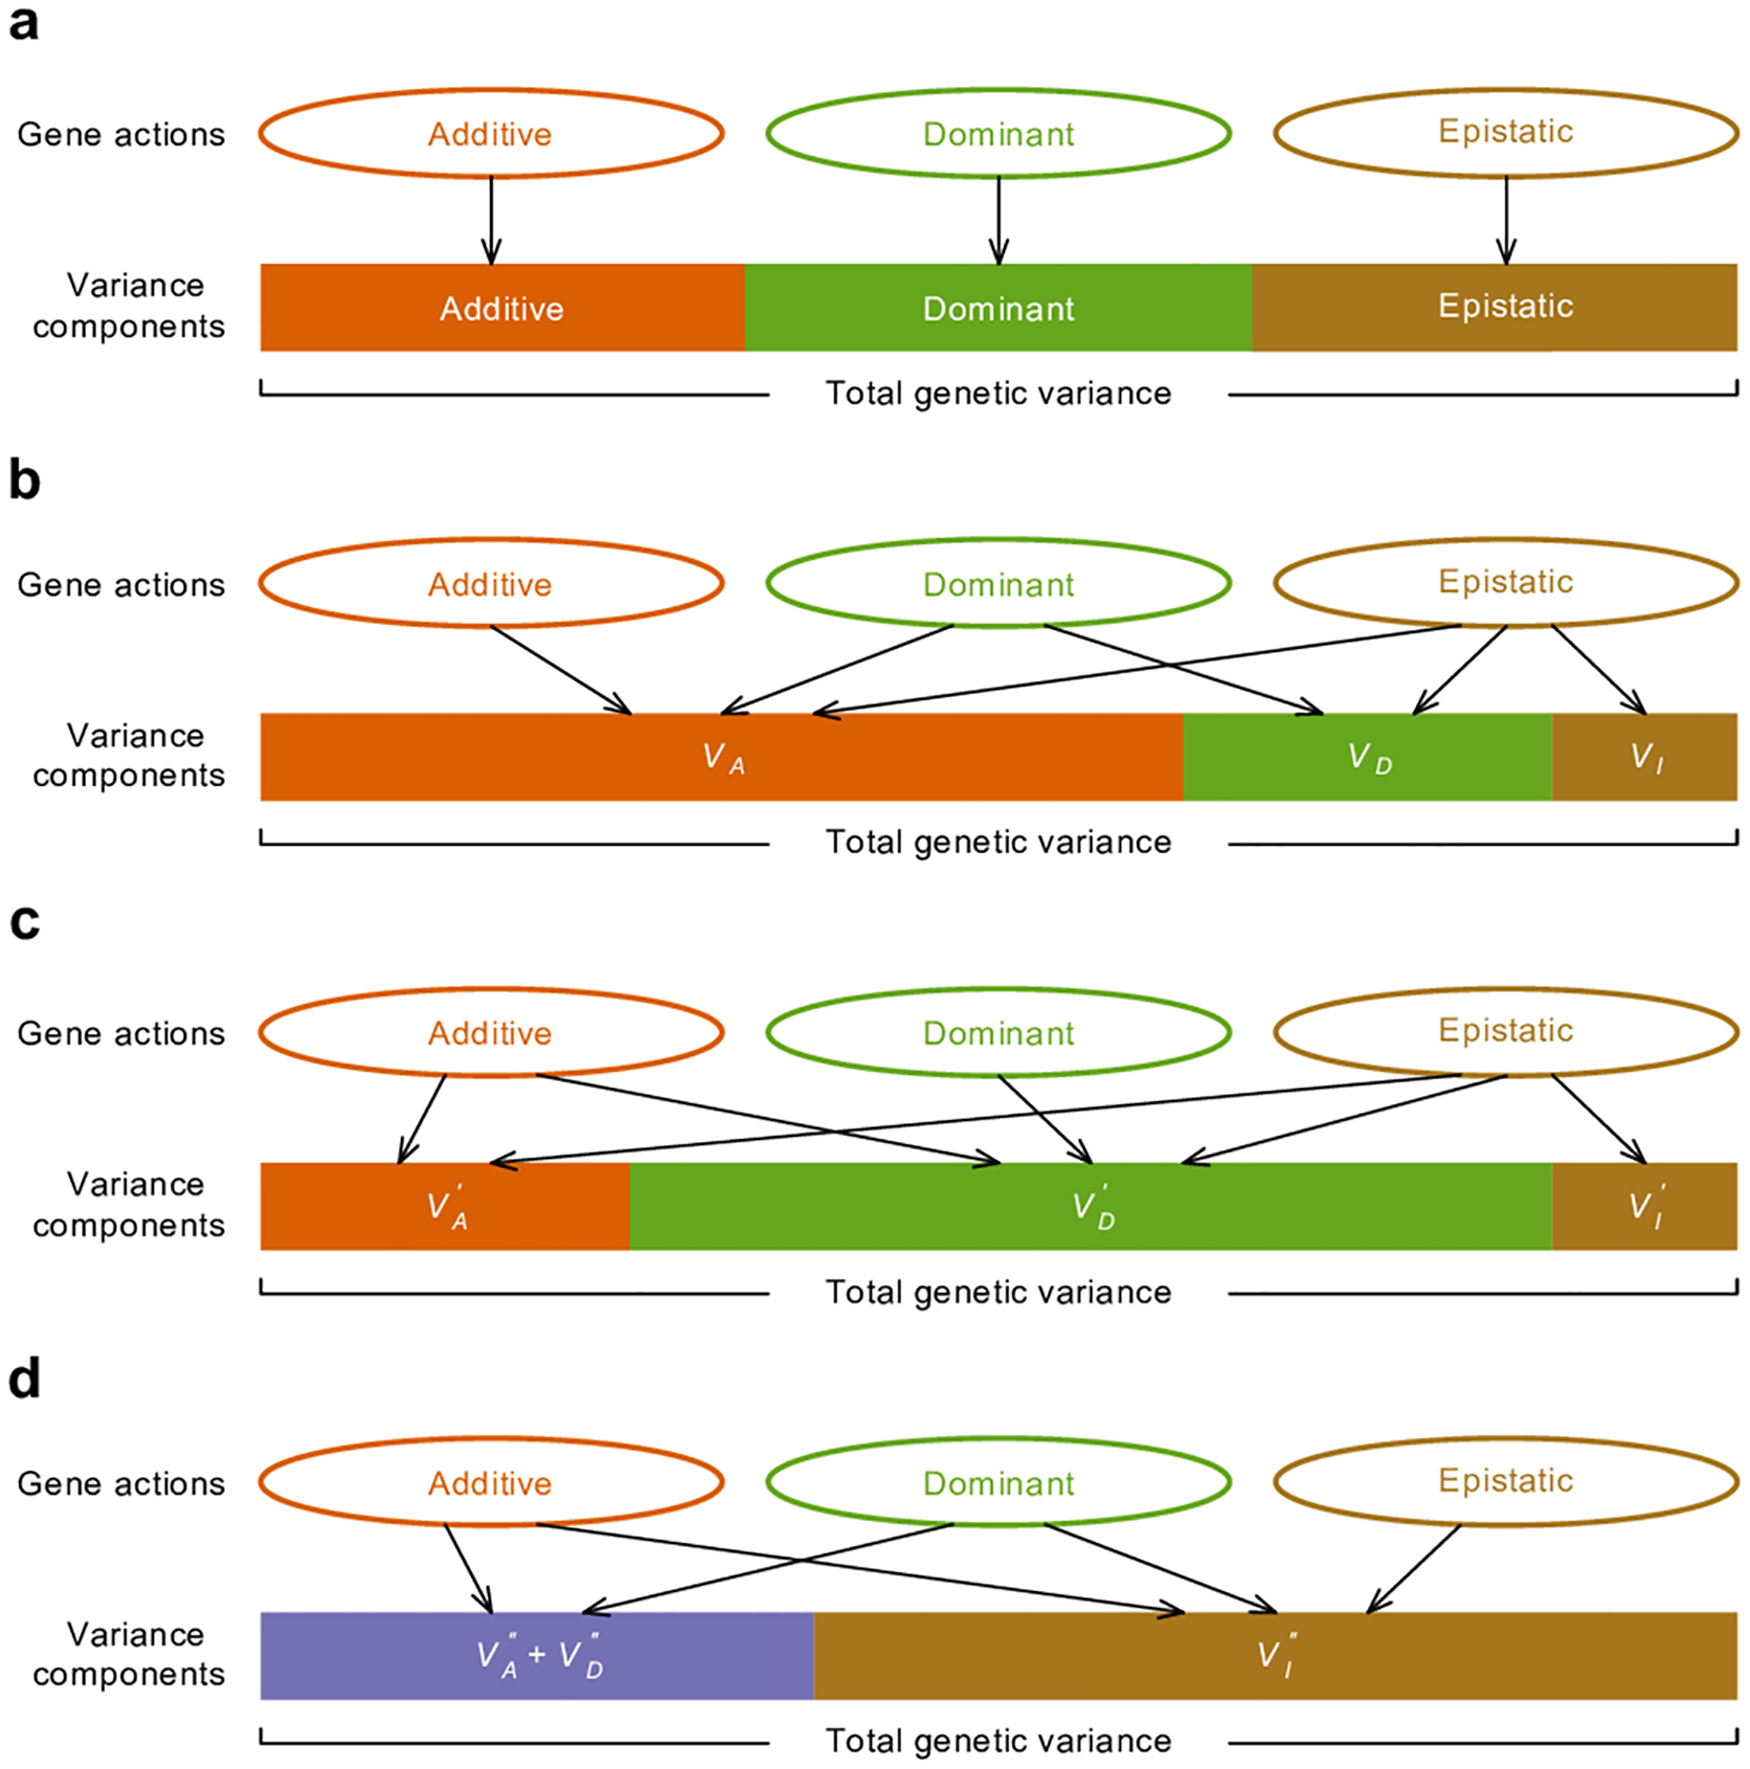 Relationship between gene actions and variance components.